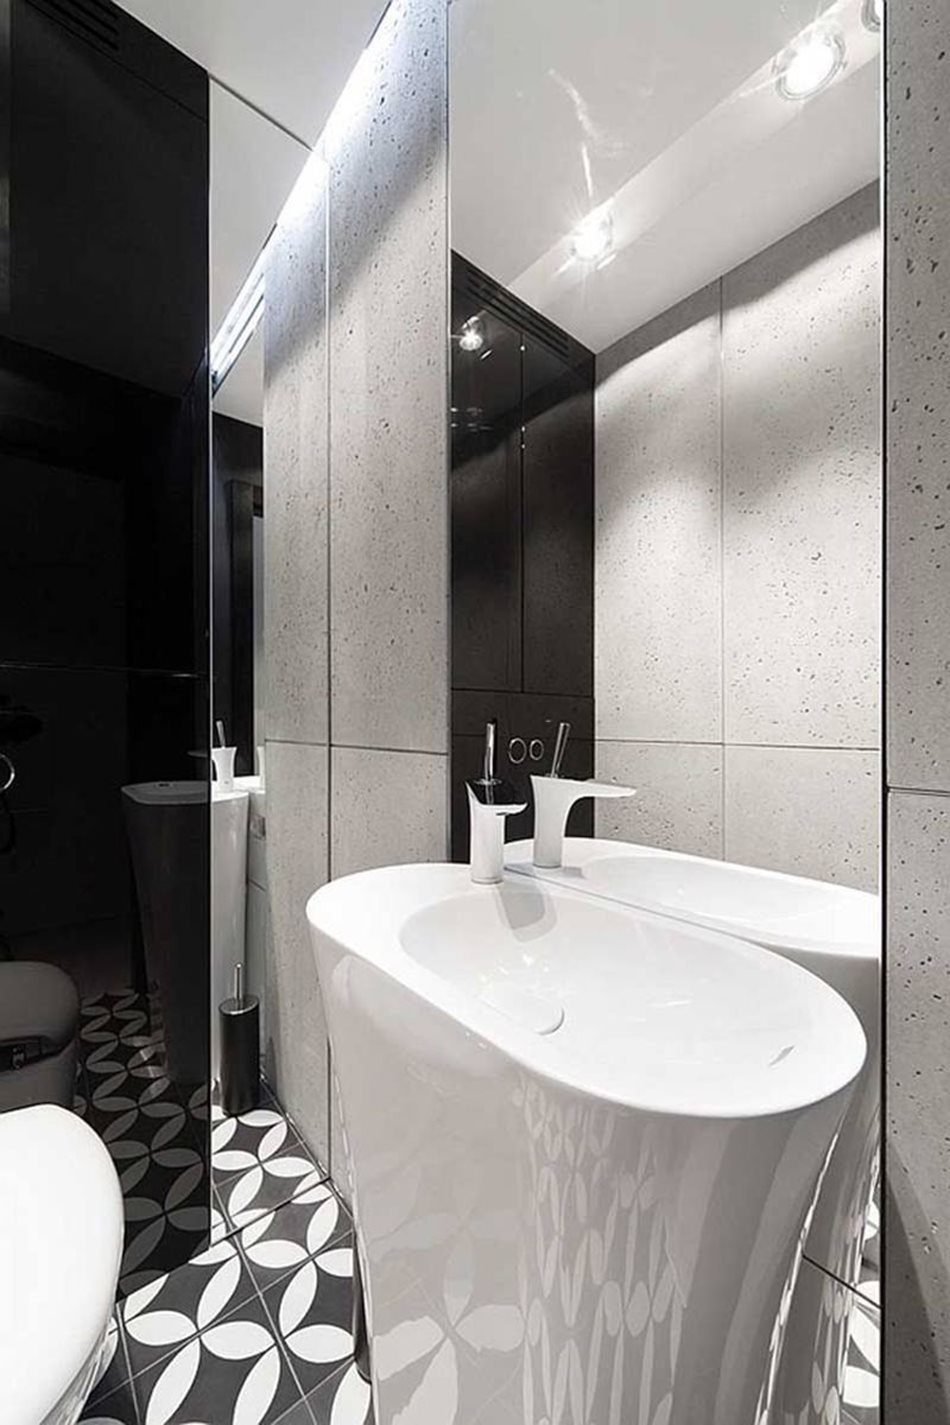 Apartment interior design in black and white colors - In a small bathroom, the space is enlarged with the help of mirrors and reflecting